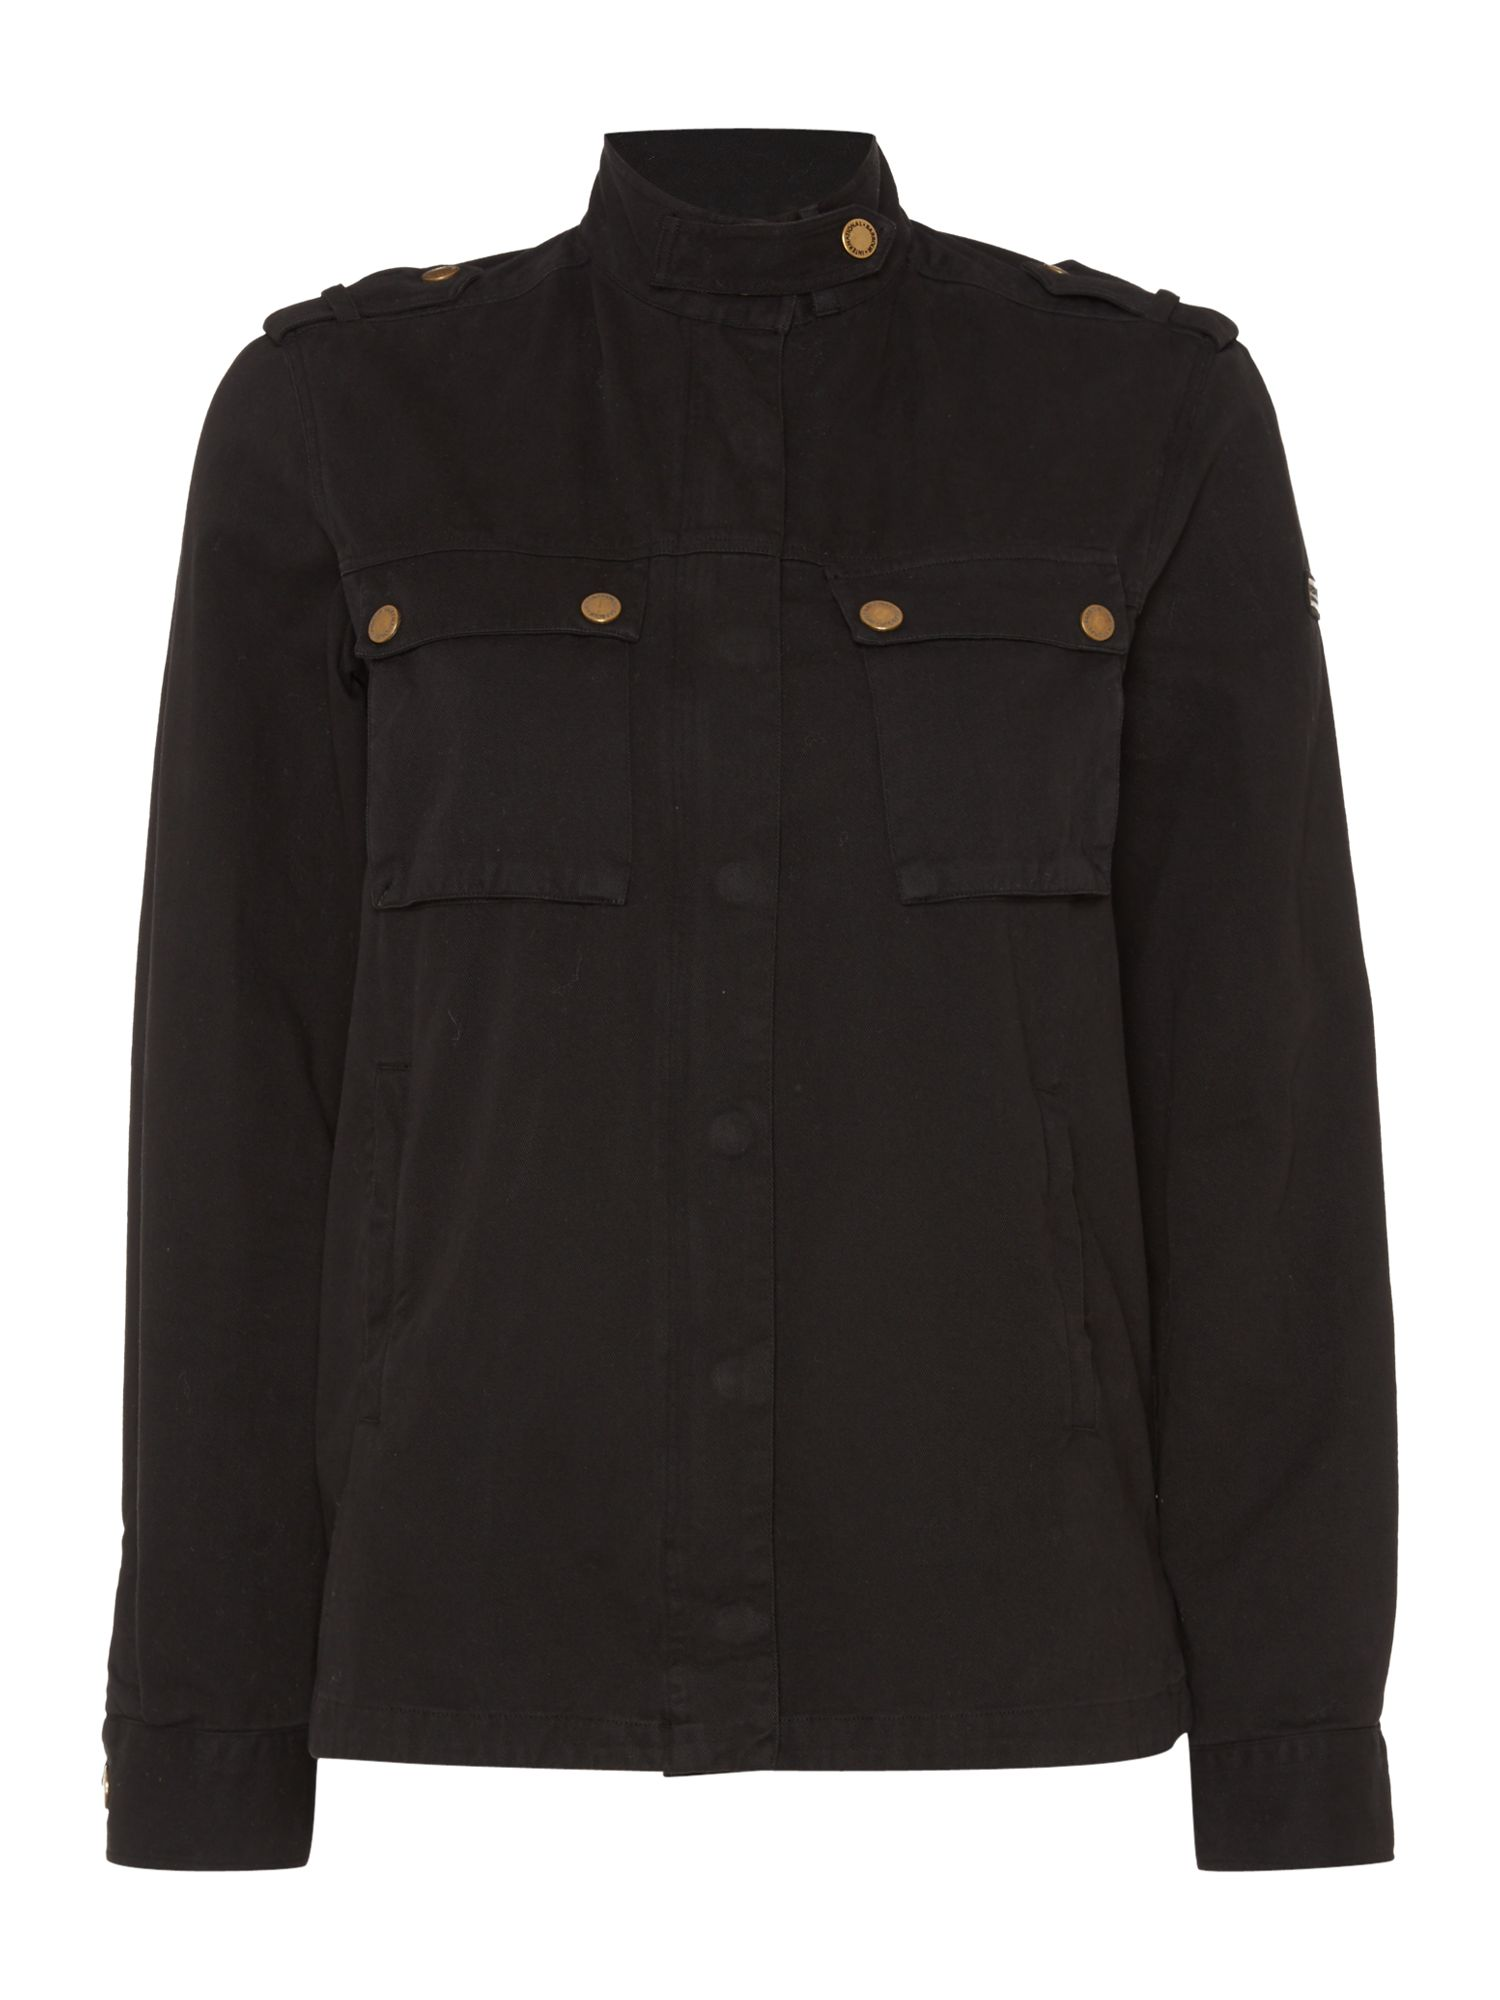 Barbour Barbour International sprocket cove jacket, Black